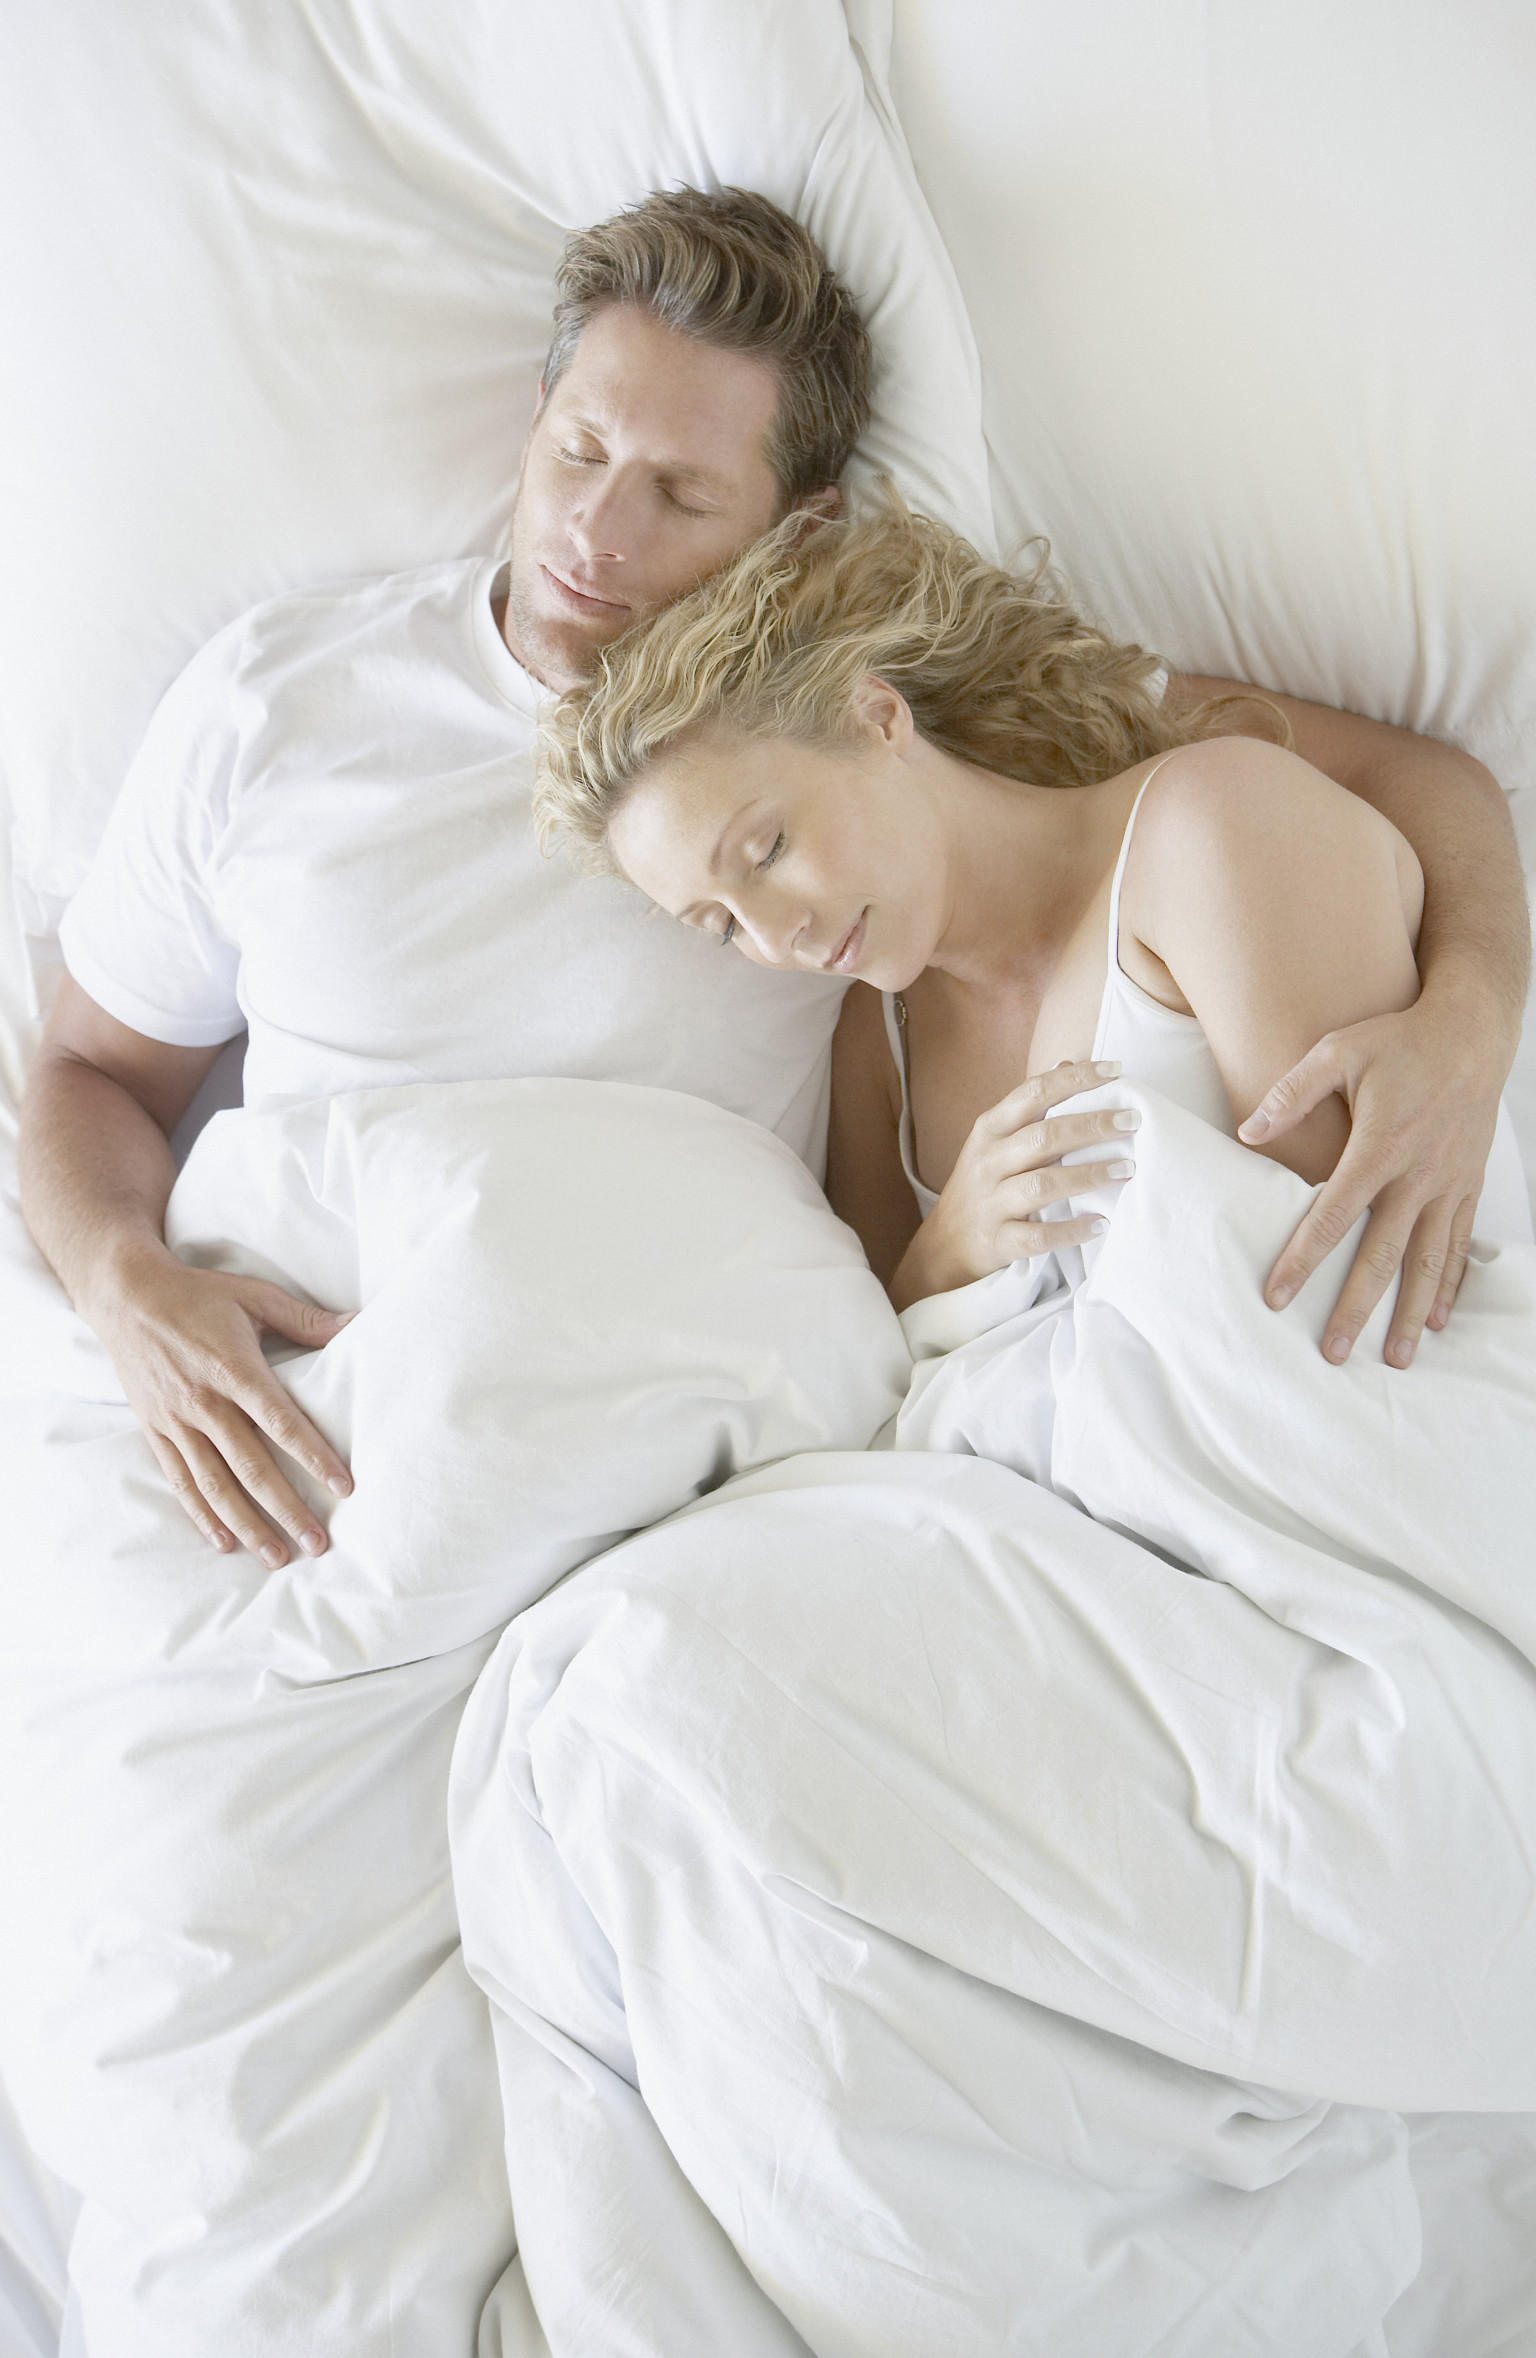 sexless marriage: how to deal with a decrease in sex | huffpost